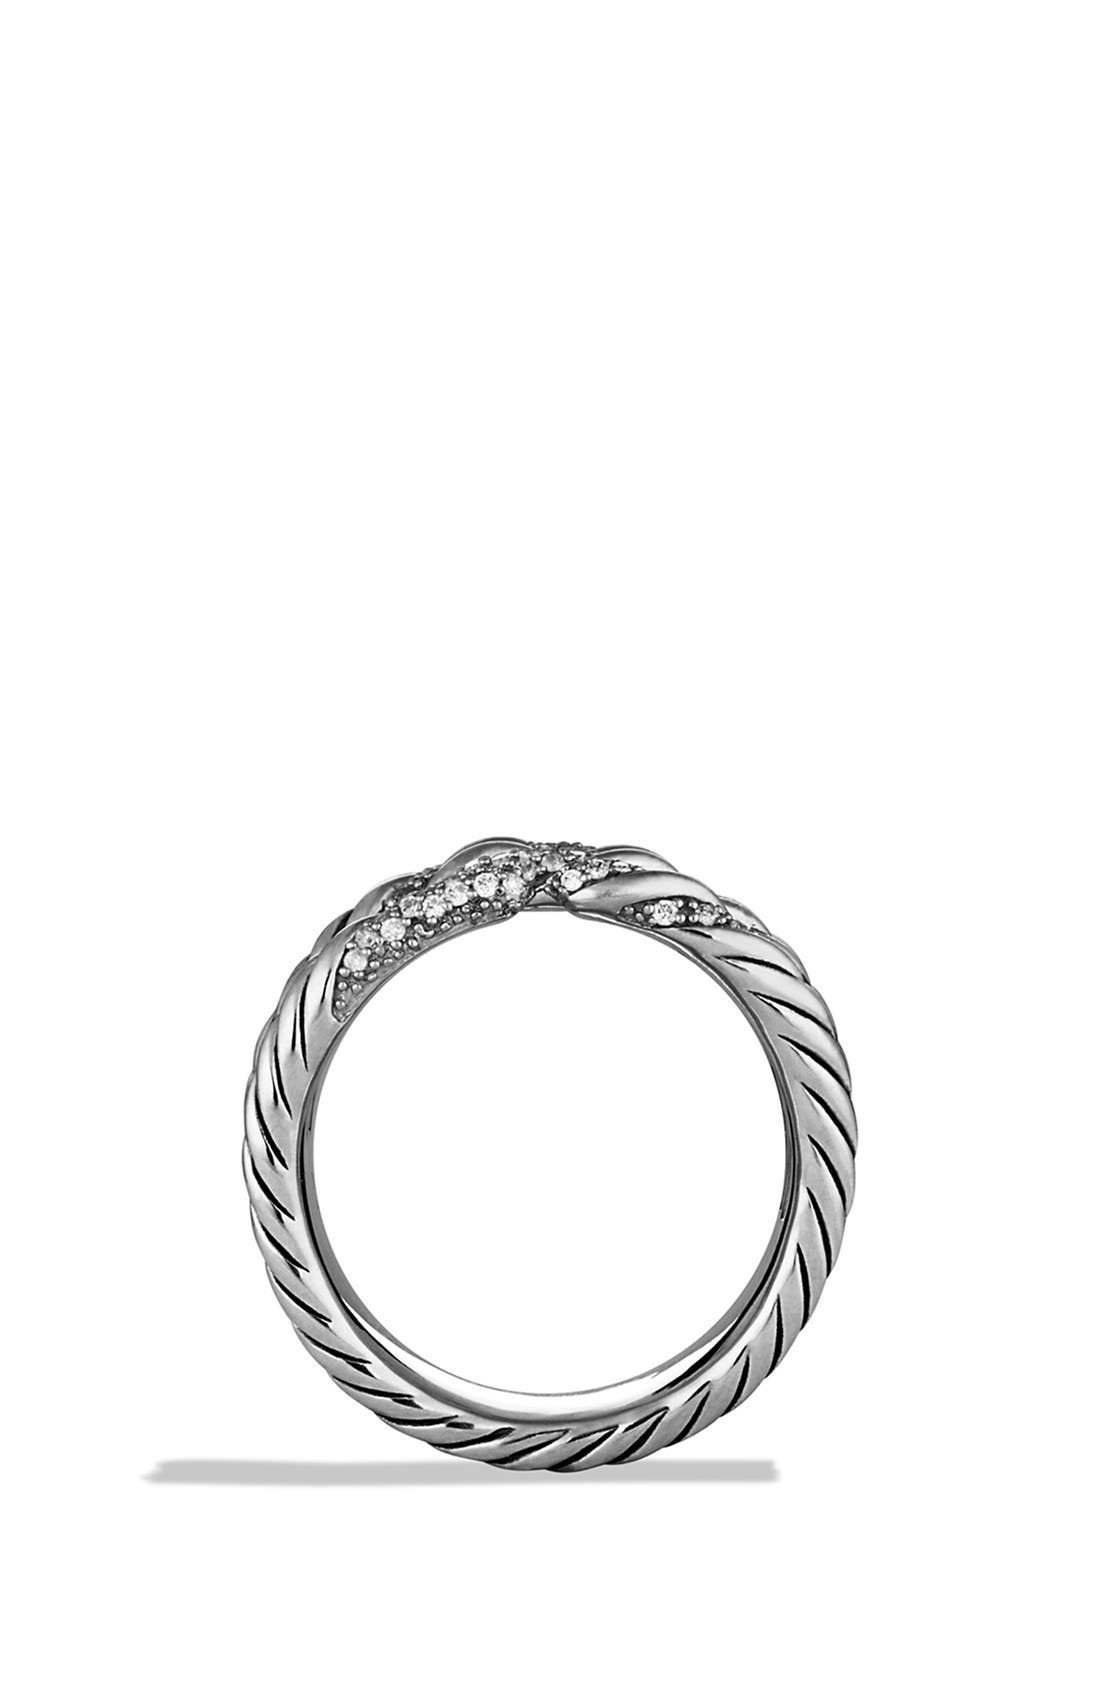 'Willow' Five-Row Ring with Diamonds,                             Alternate thumbnail 4, color,                             040